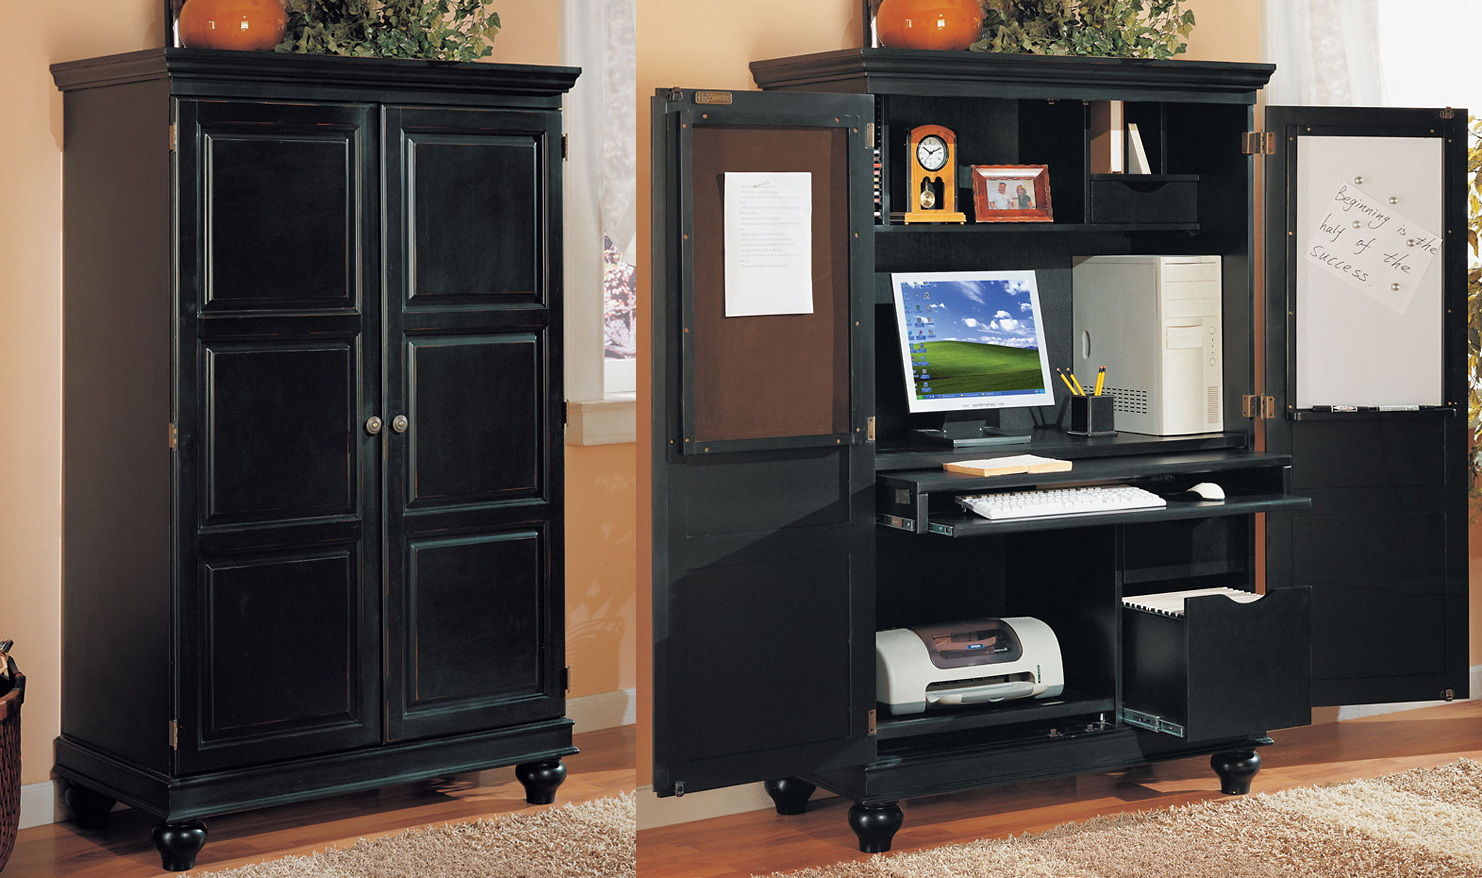 Black Computer Armoire with computer and printer inside